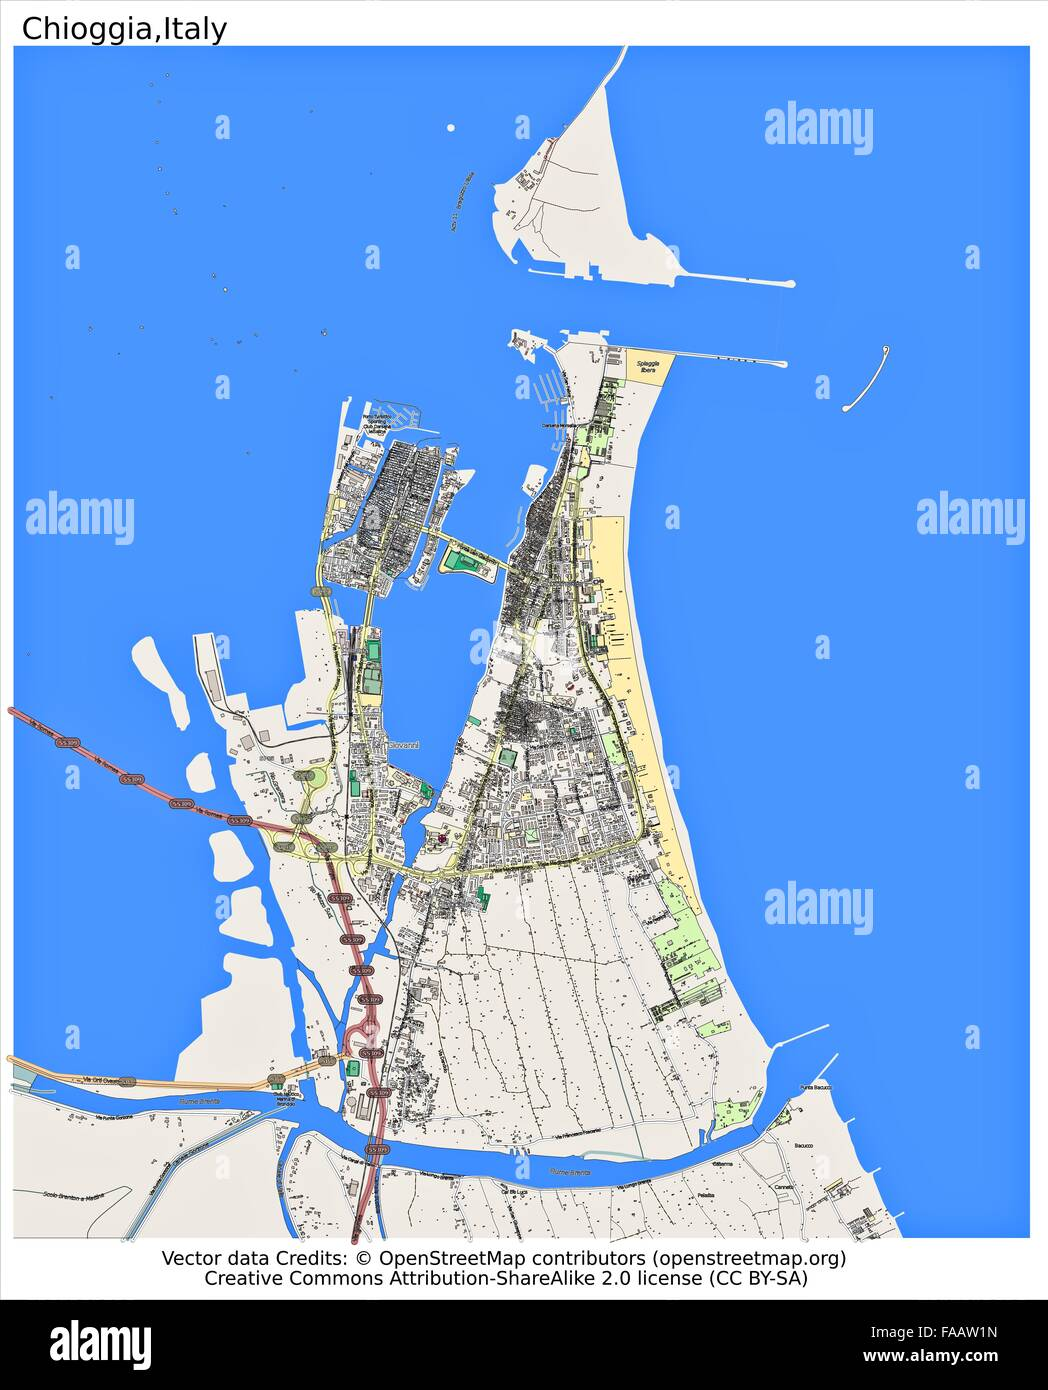 Chioggia italy city map stock photo 92437569 alamy chioggia italy city map thecheapjerseys Choice Image